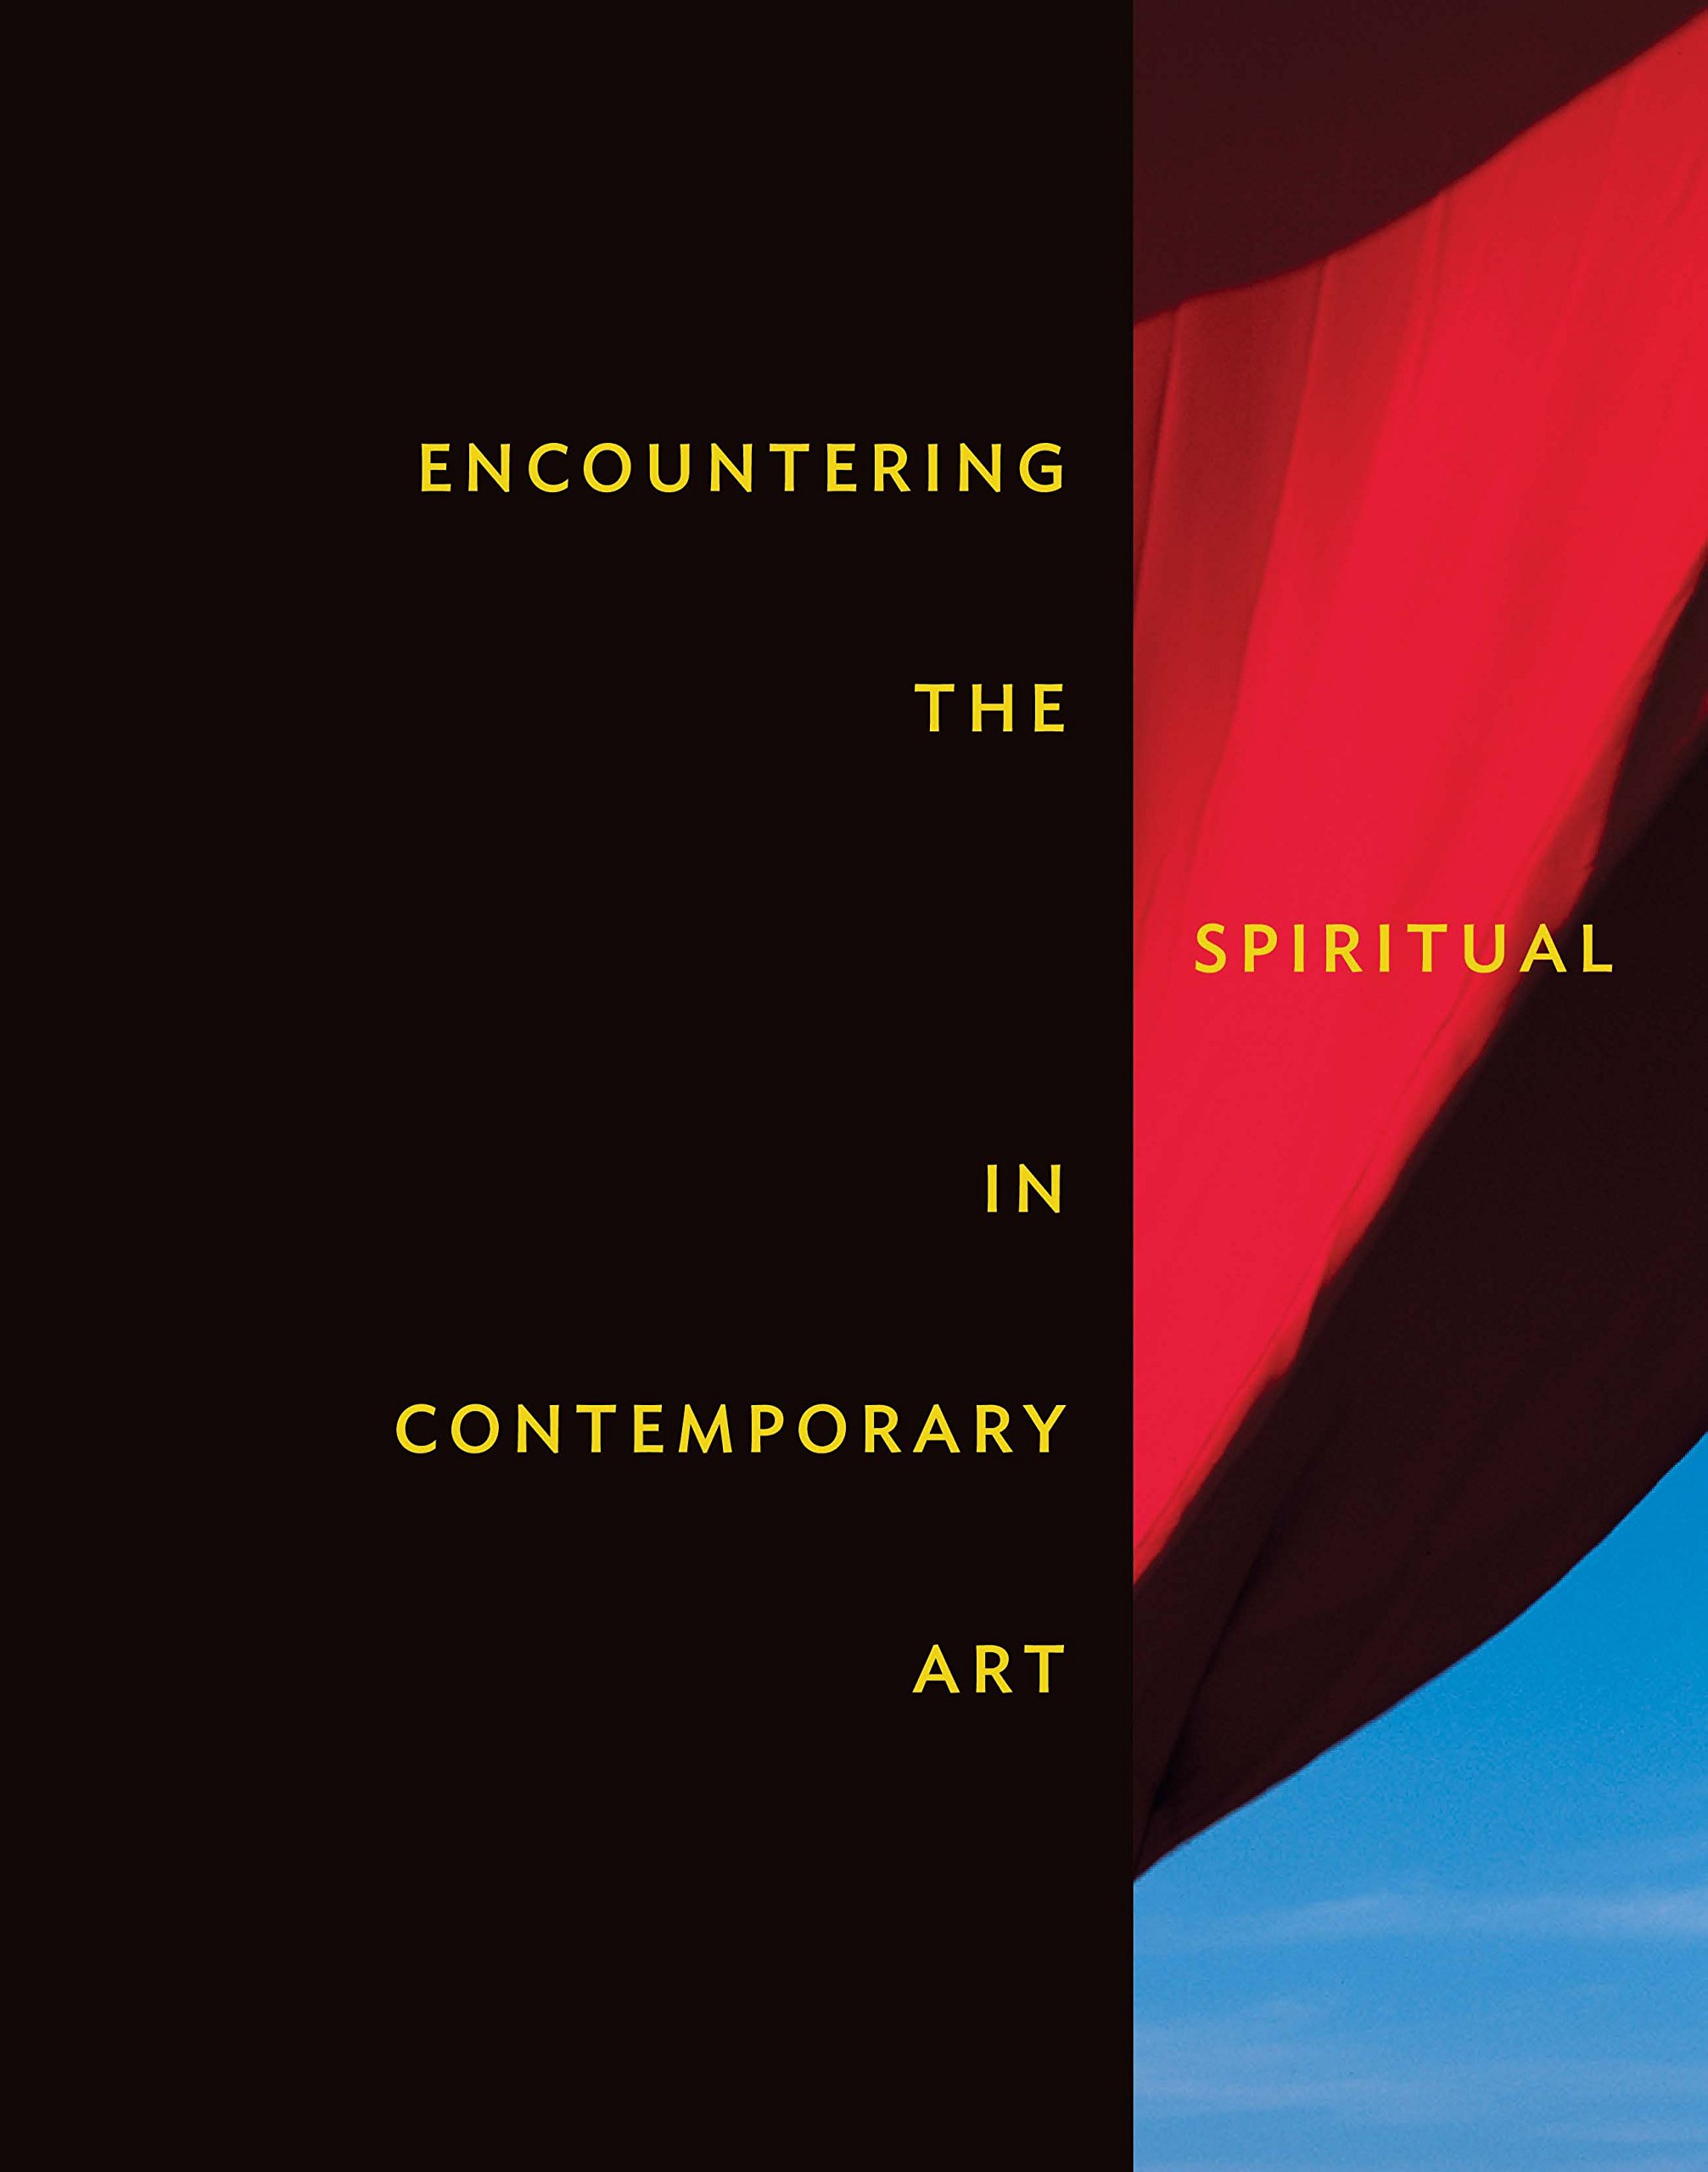 Encountering the Spiritual in Contemporary Art by Nelson Atkins